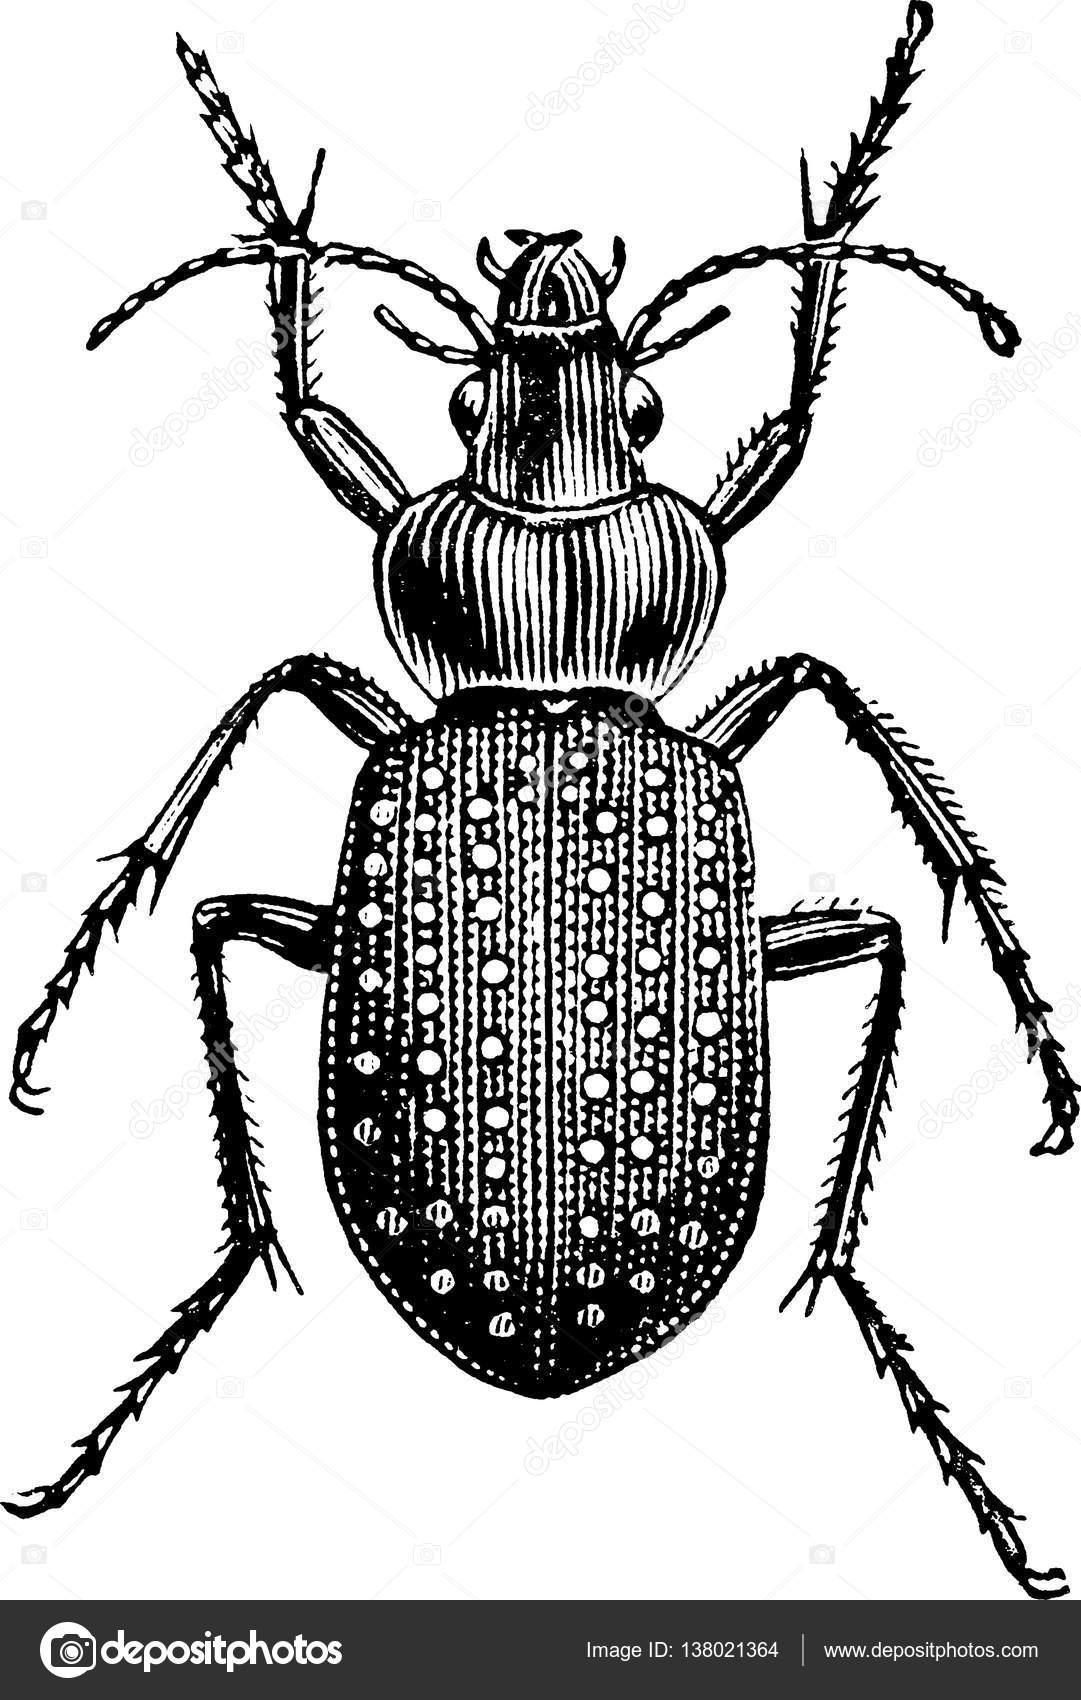 Ground beetles clipart #9